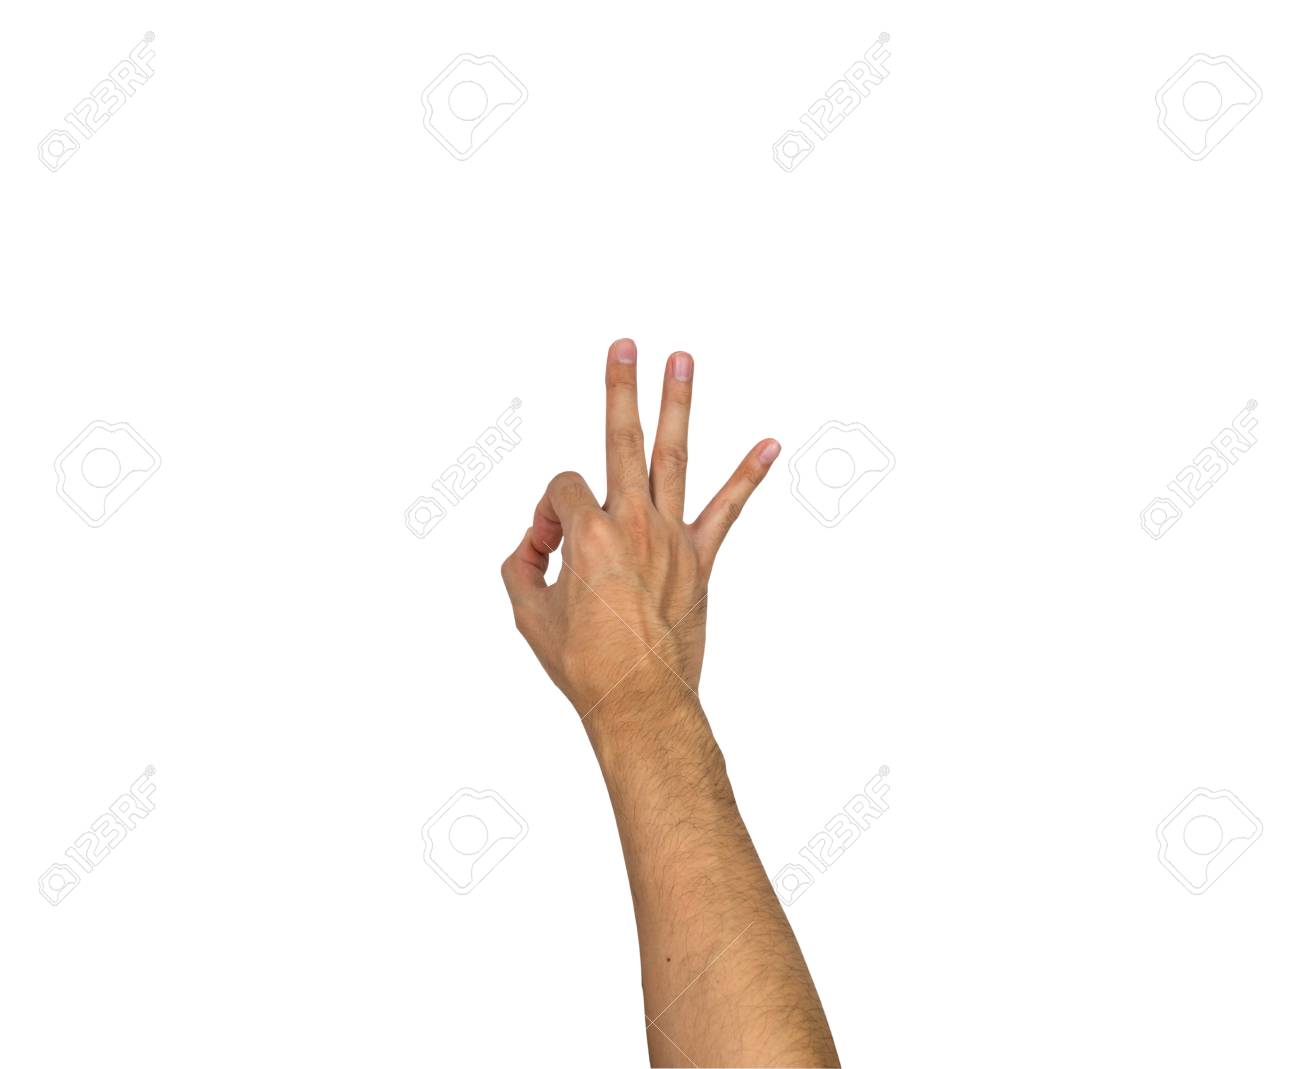 ok hand sign gesture isolated on white background stock photo